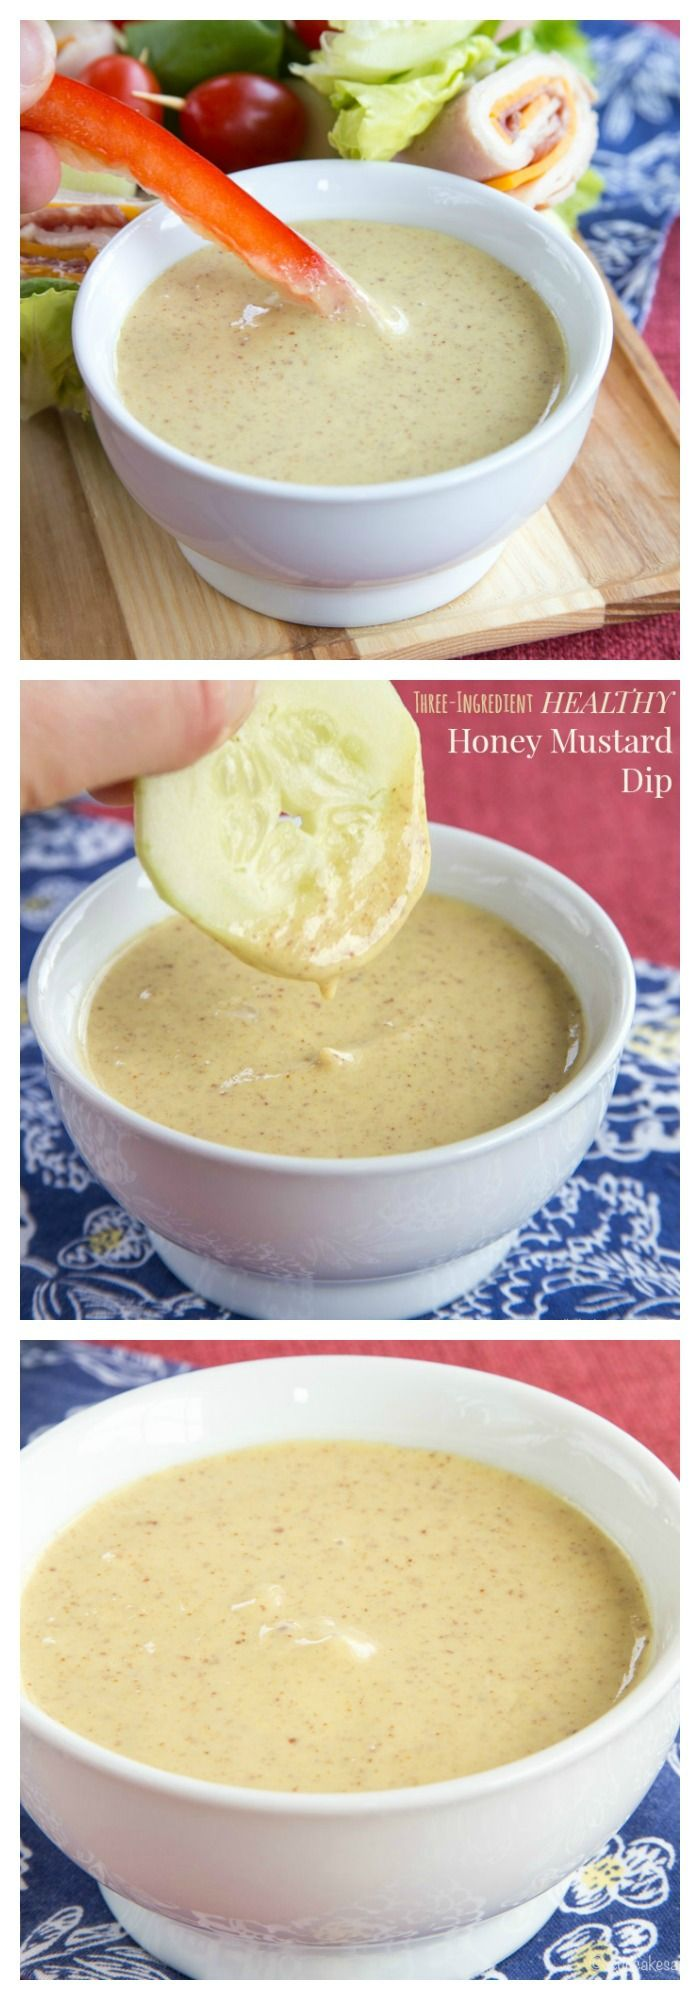 Three-Ingredient Healthy Honey Mustard Dip - so fast and easy, you'll be making this recipe for all of your veggie platters and lunch boxes. My kids love it for dipping their carrot sticks and cucumbers!   cupcakesandkalechips.com   gluten free